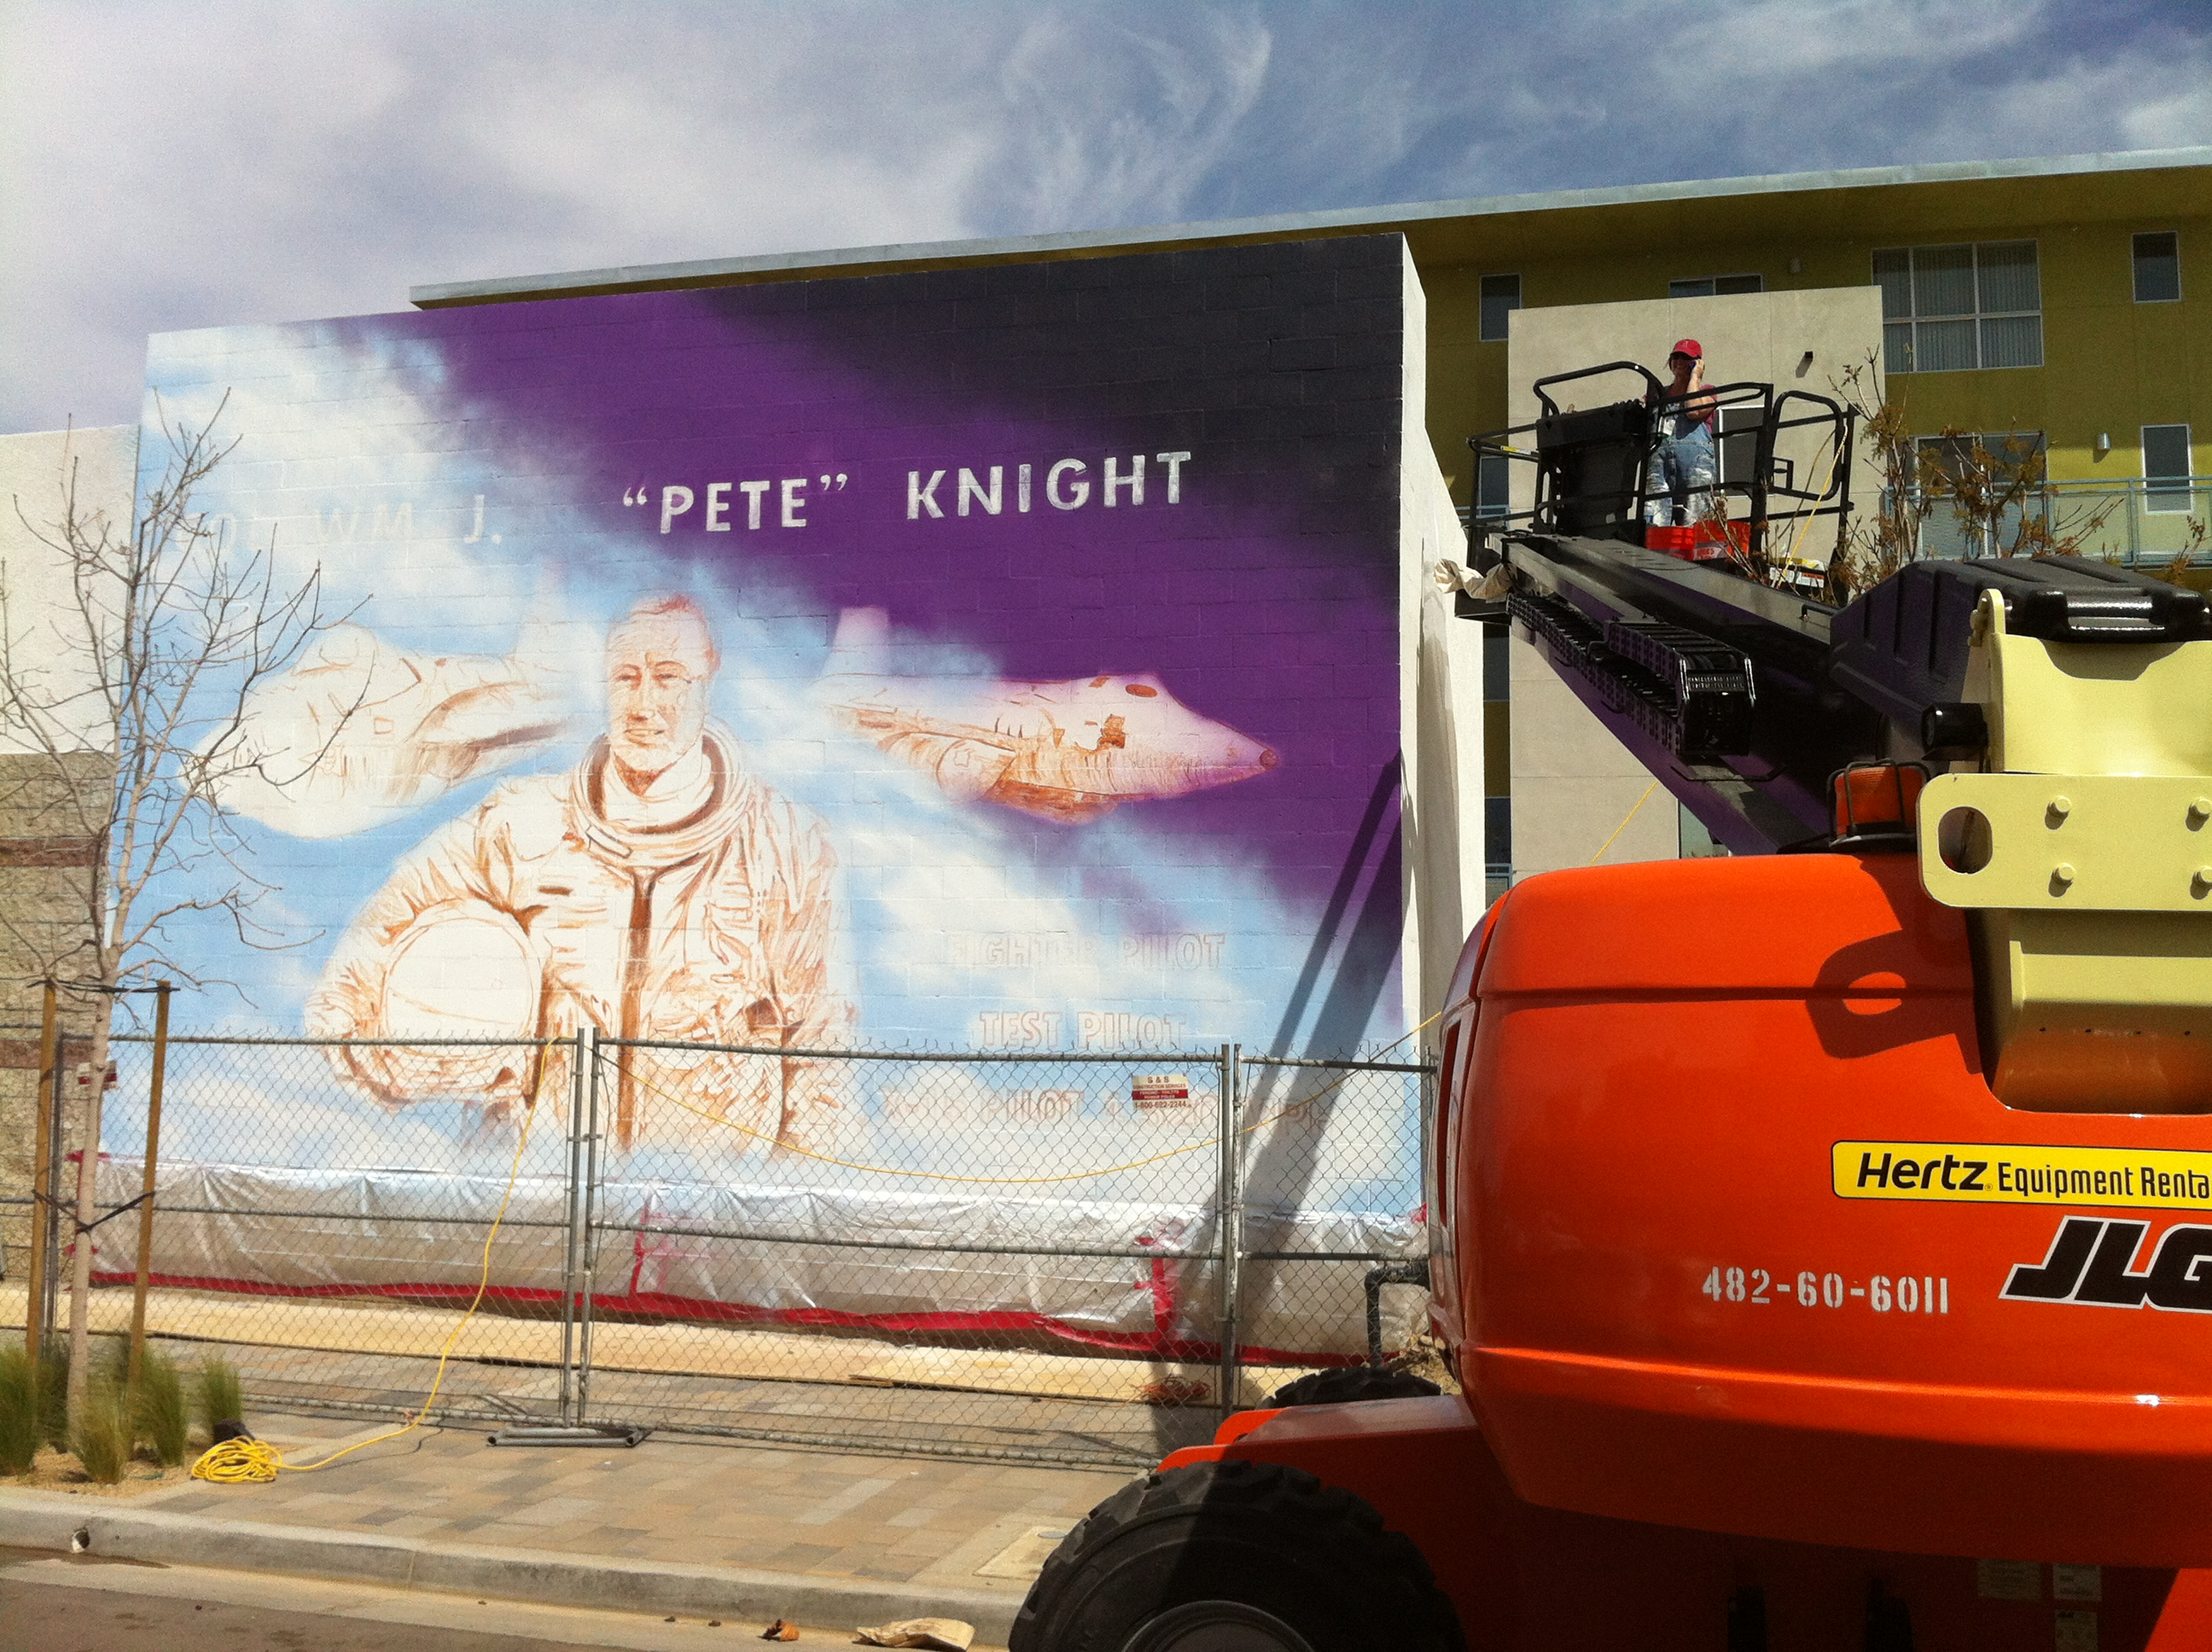 Pete Knight mural MOAH Lancaster CA GeoMay 2012 (8)